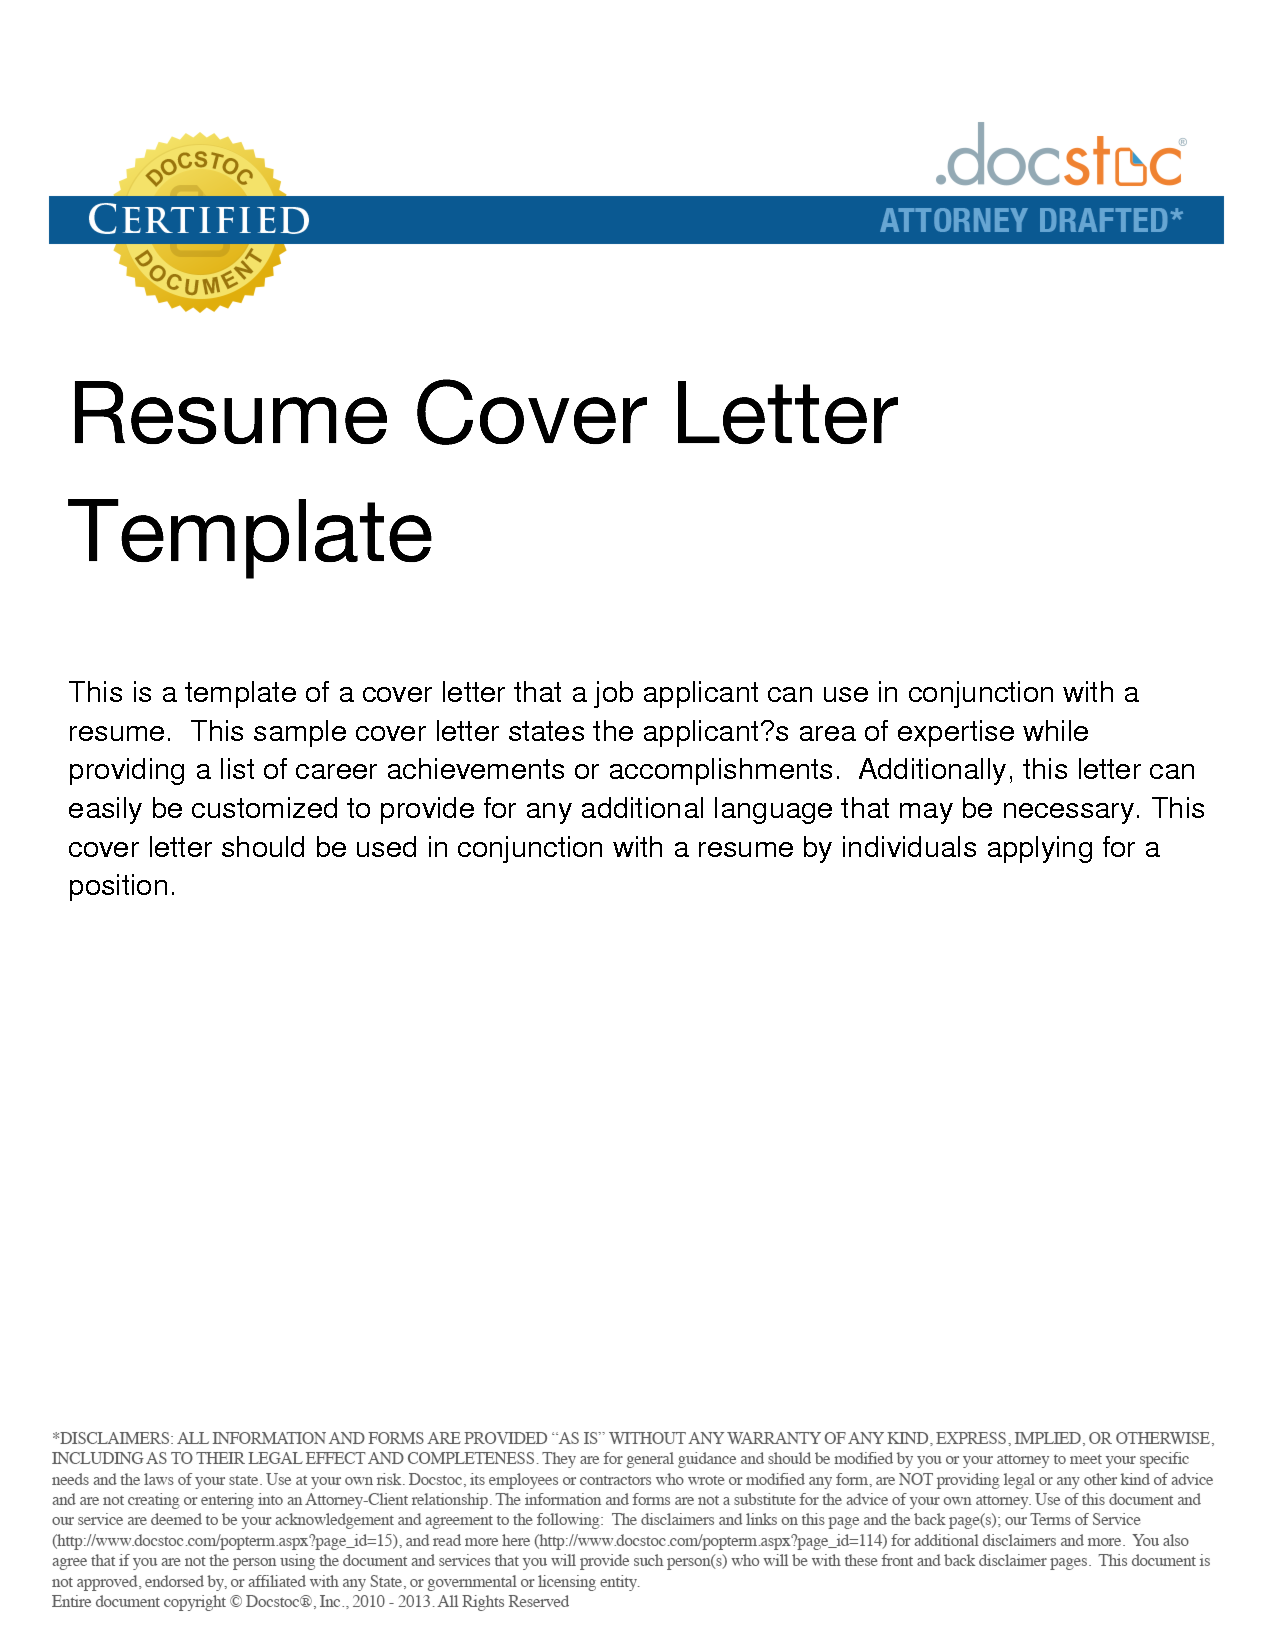 acting resume cover letter example http//www state an objective for a job model free doc download